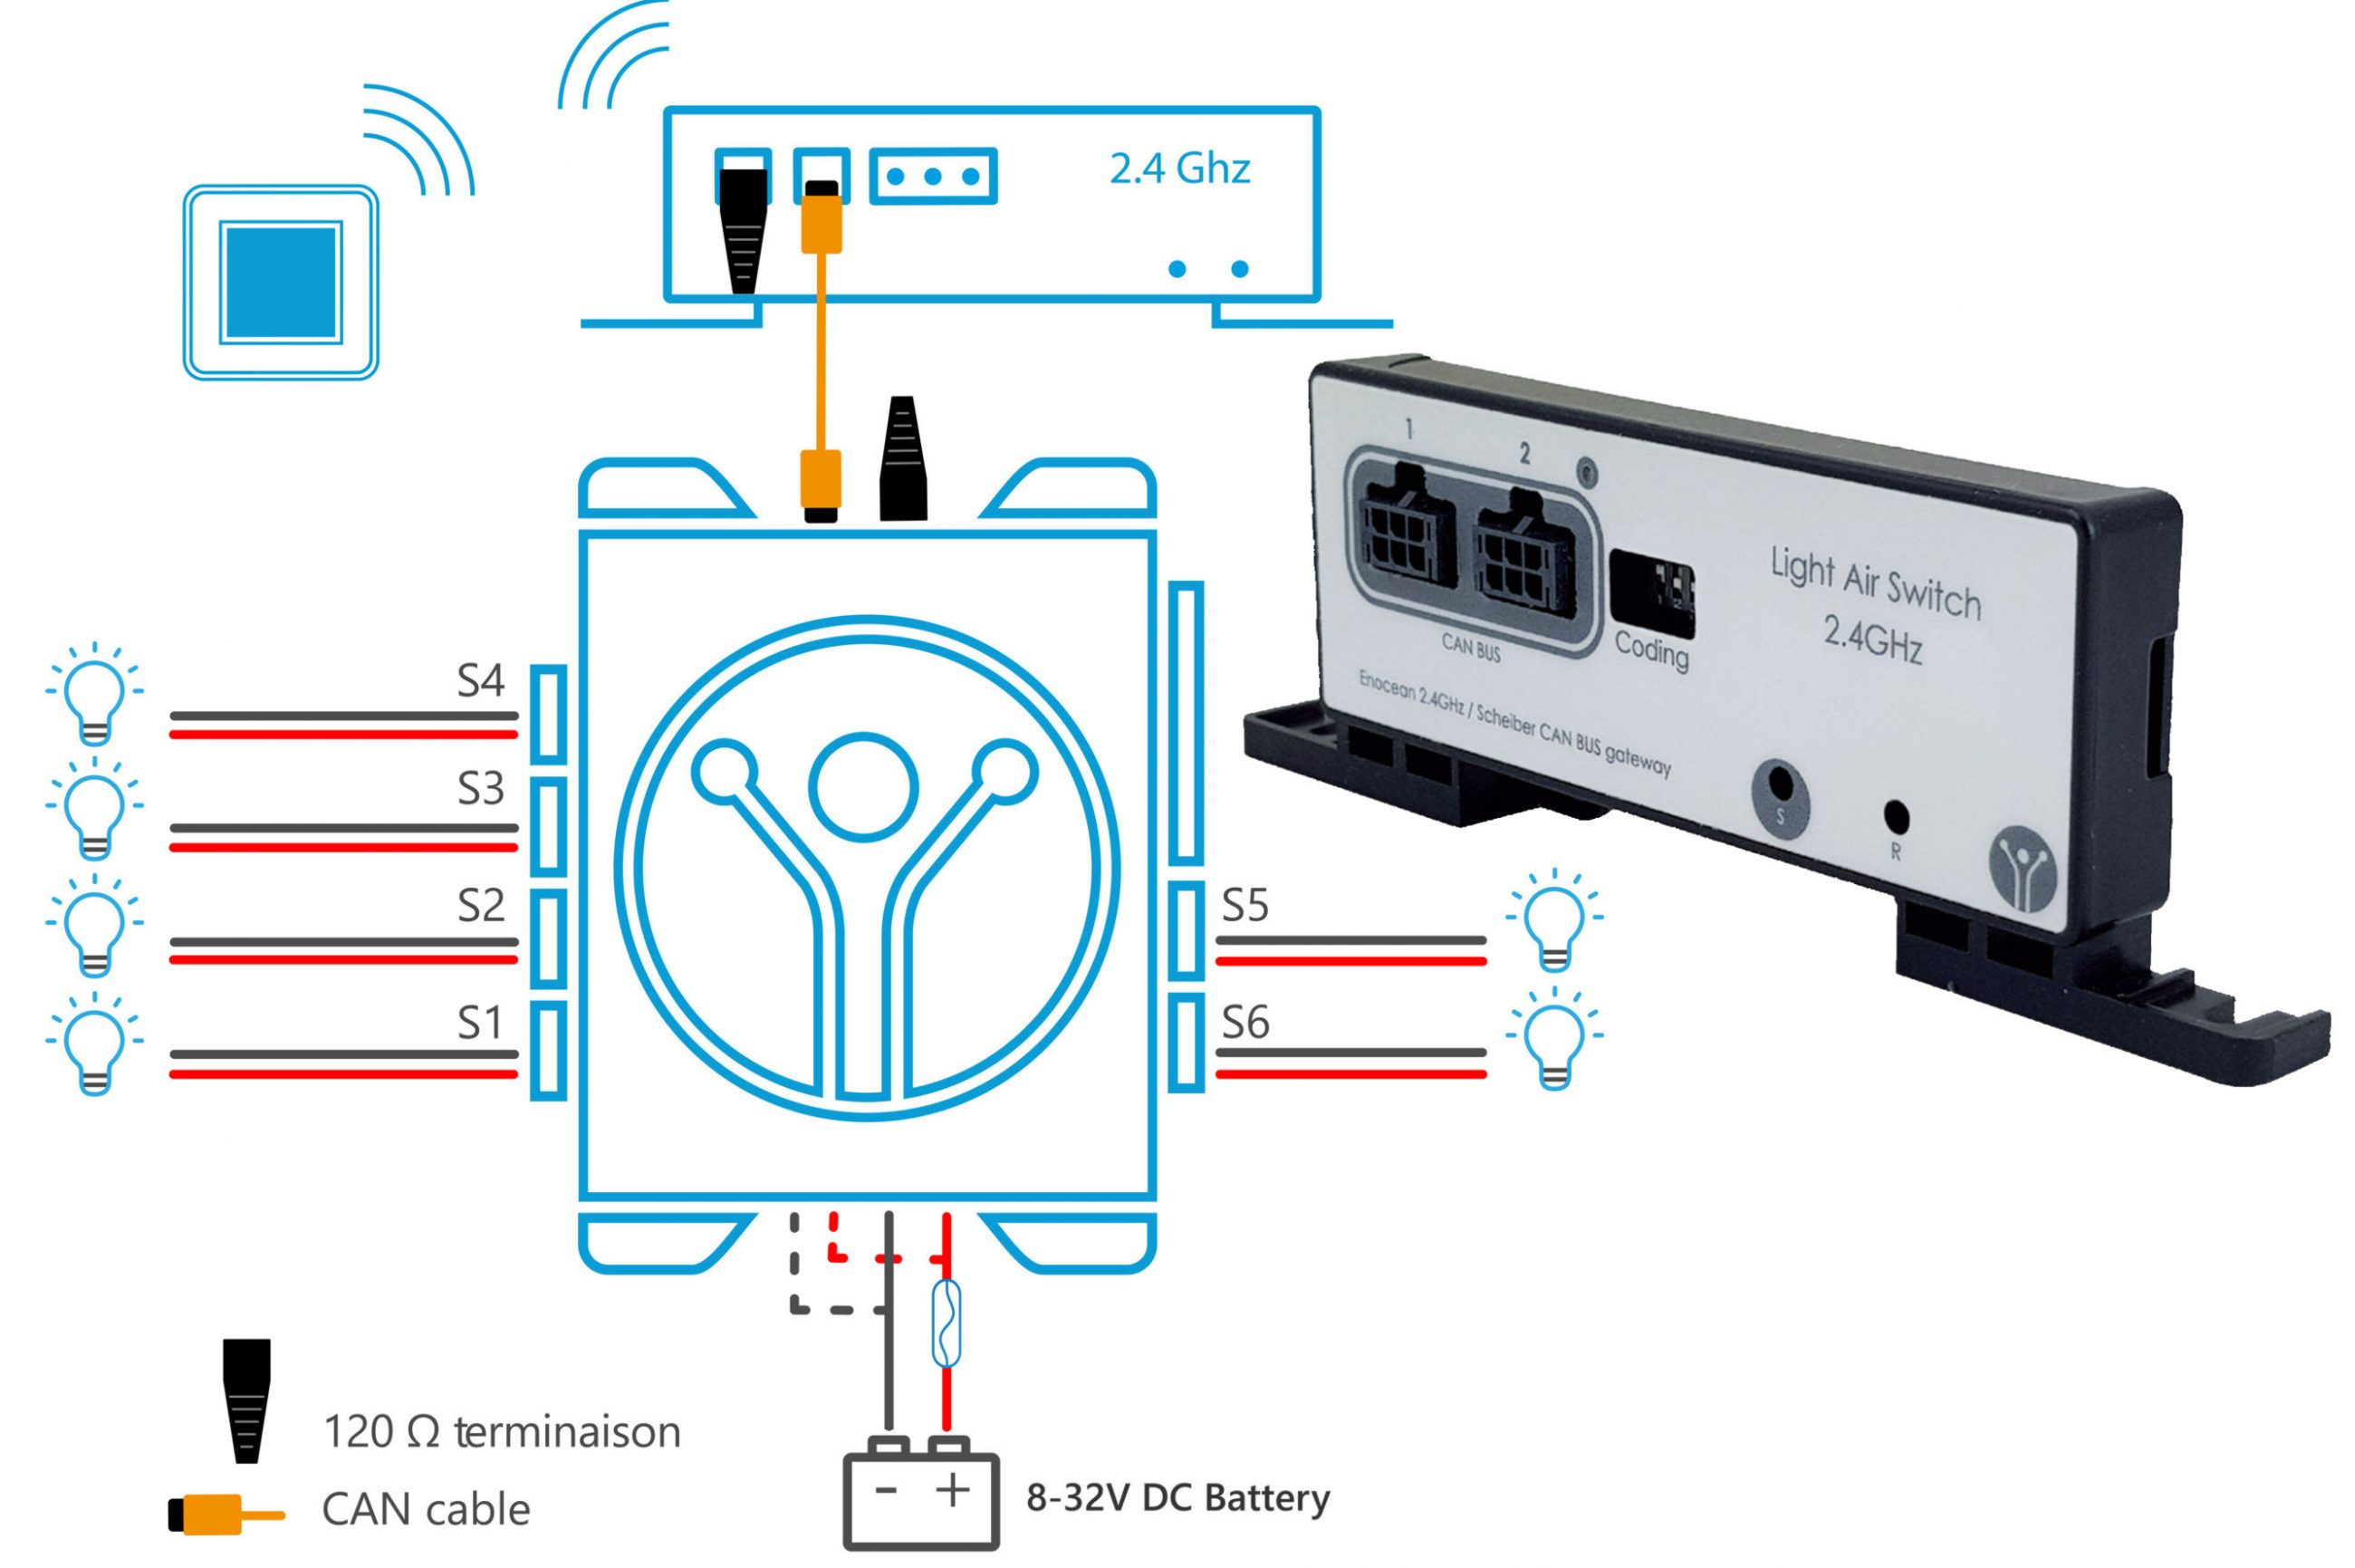 Scheibers Kinetic Light Air Switch Kit With Marinebeam Assist Panbo Can Bus Network Diagram So Heres A Current System Along Photo Of The New Gateway Advantage Is Being Able To Install Module Near